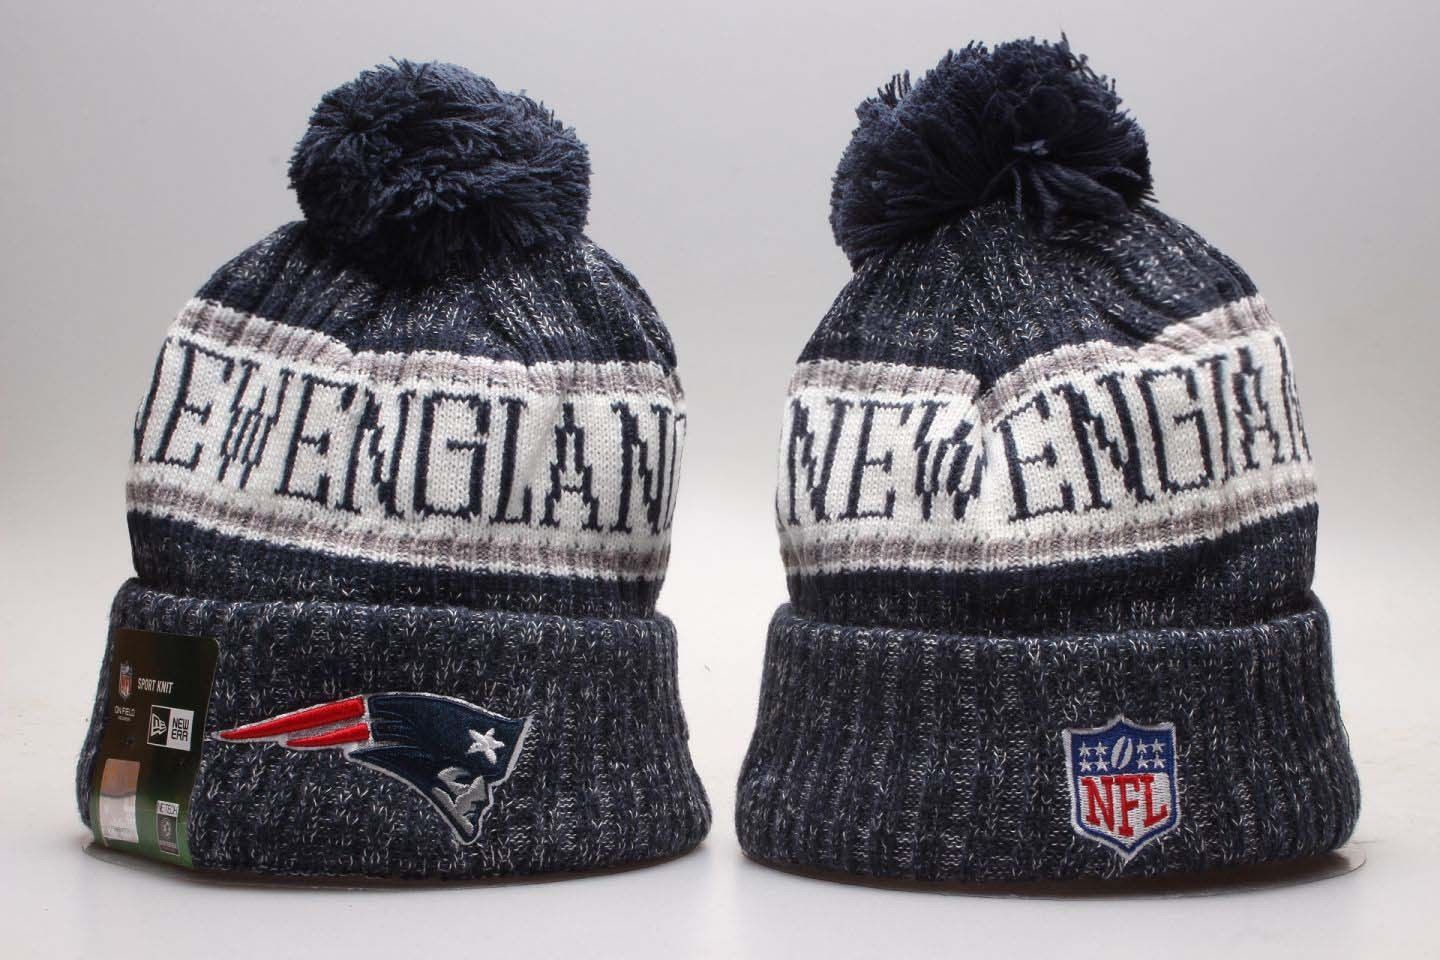 Hats 163543  2018 New England Patriots New Era Knit Hat On Field Sideline  Beanie Stocking Cap -  BUY IT NOW ONLY   24.99 on  eBay  england  patriots   field ... e450414eccd